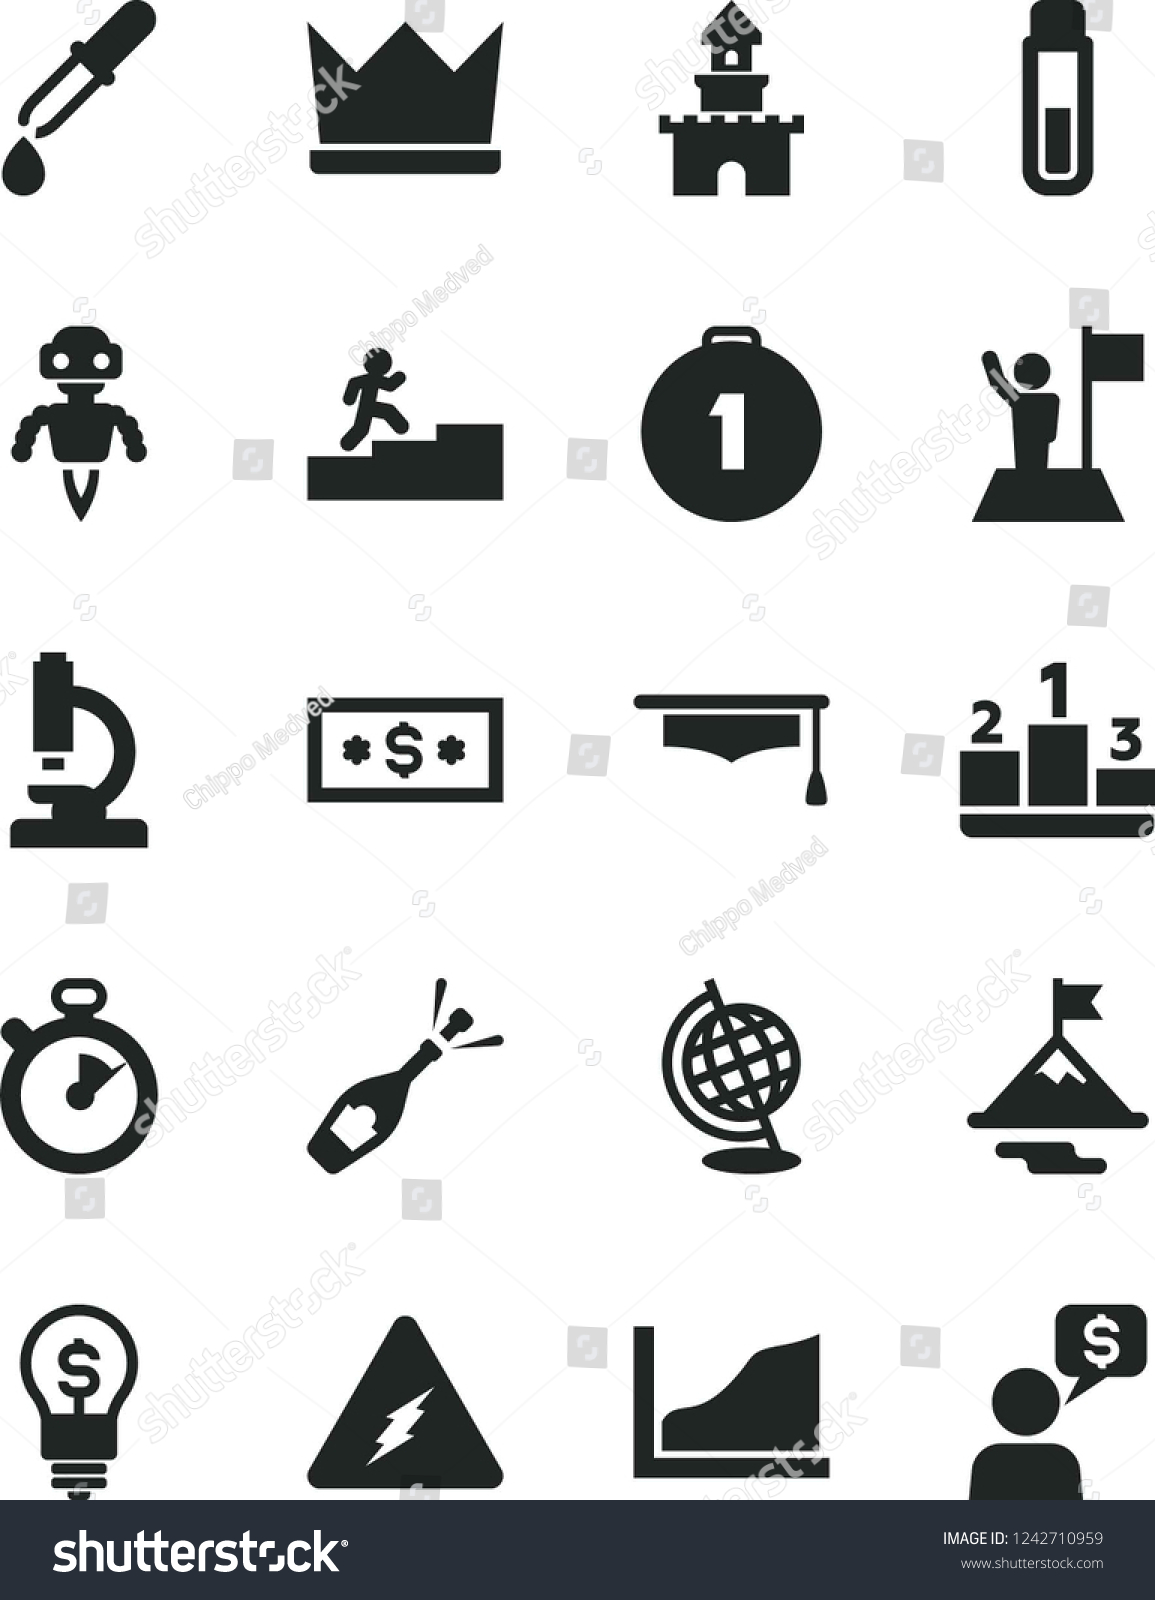 Solid Black Vector Icon Set Pedestal Stock Royalty Free Electricity Test Tube Microscope